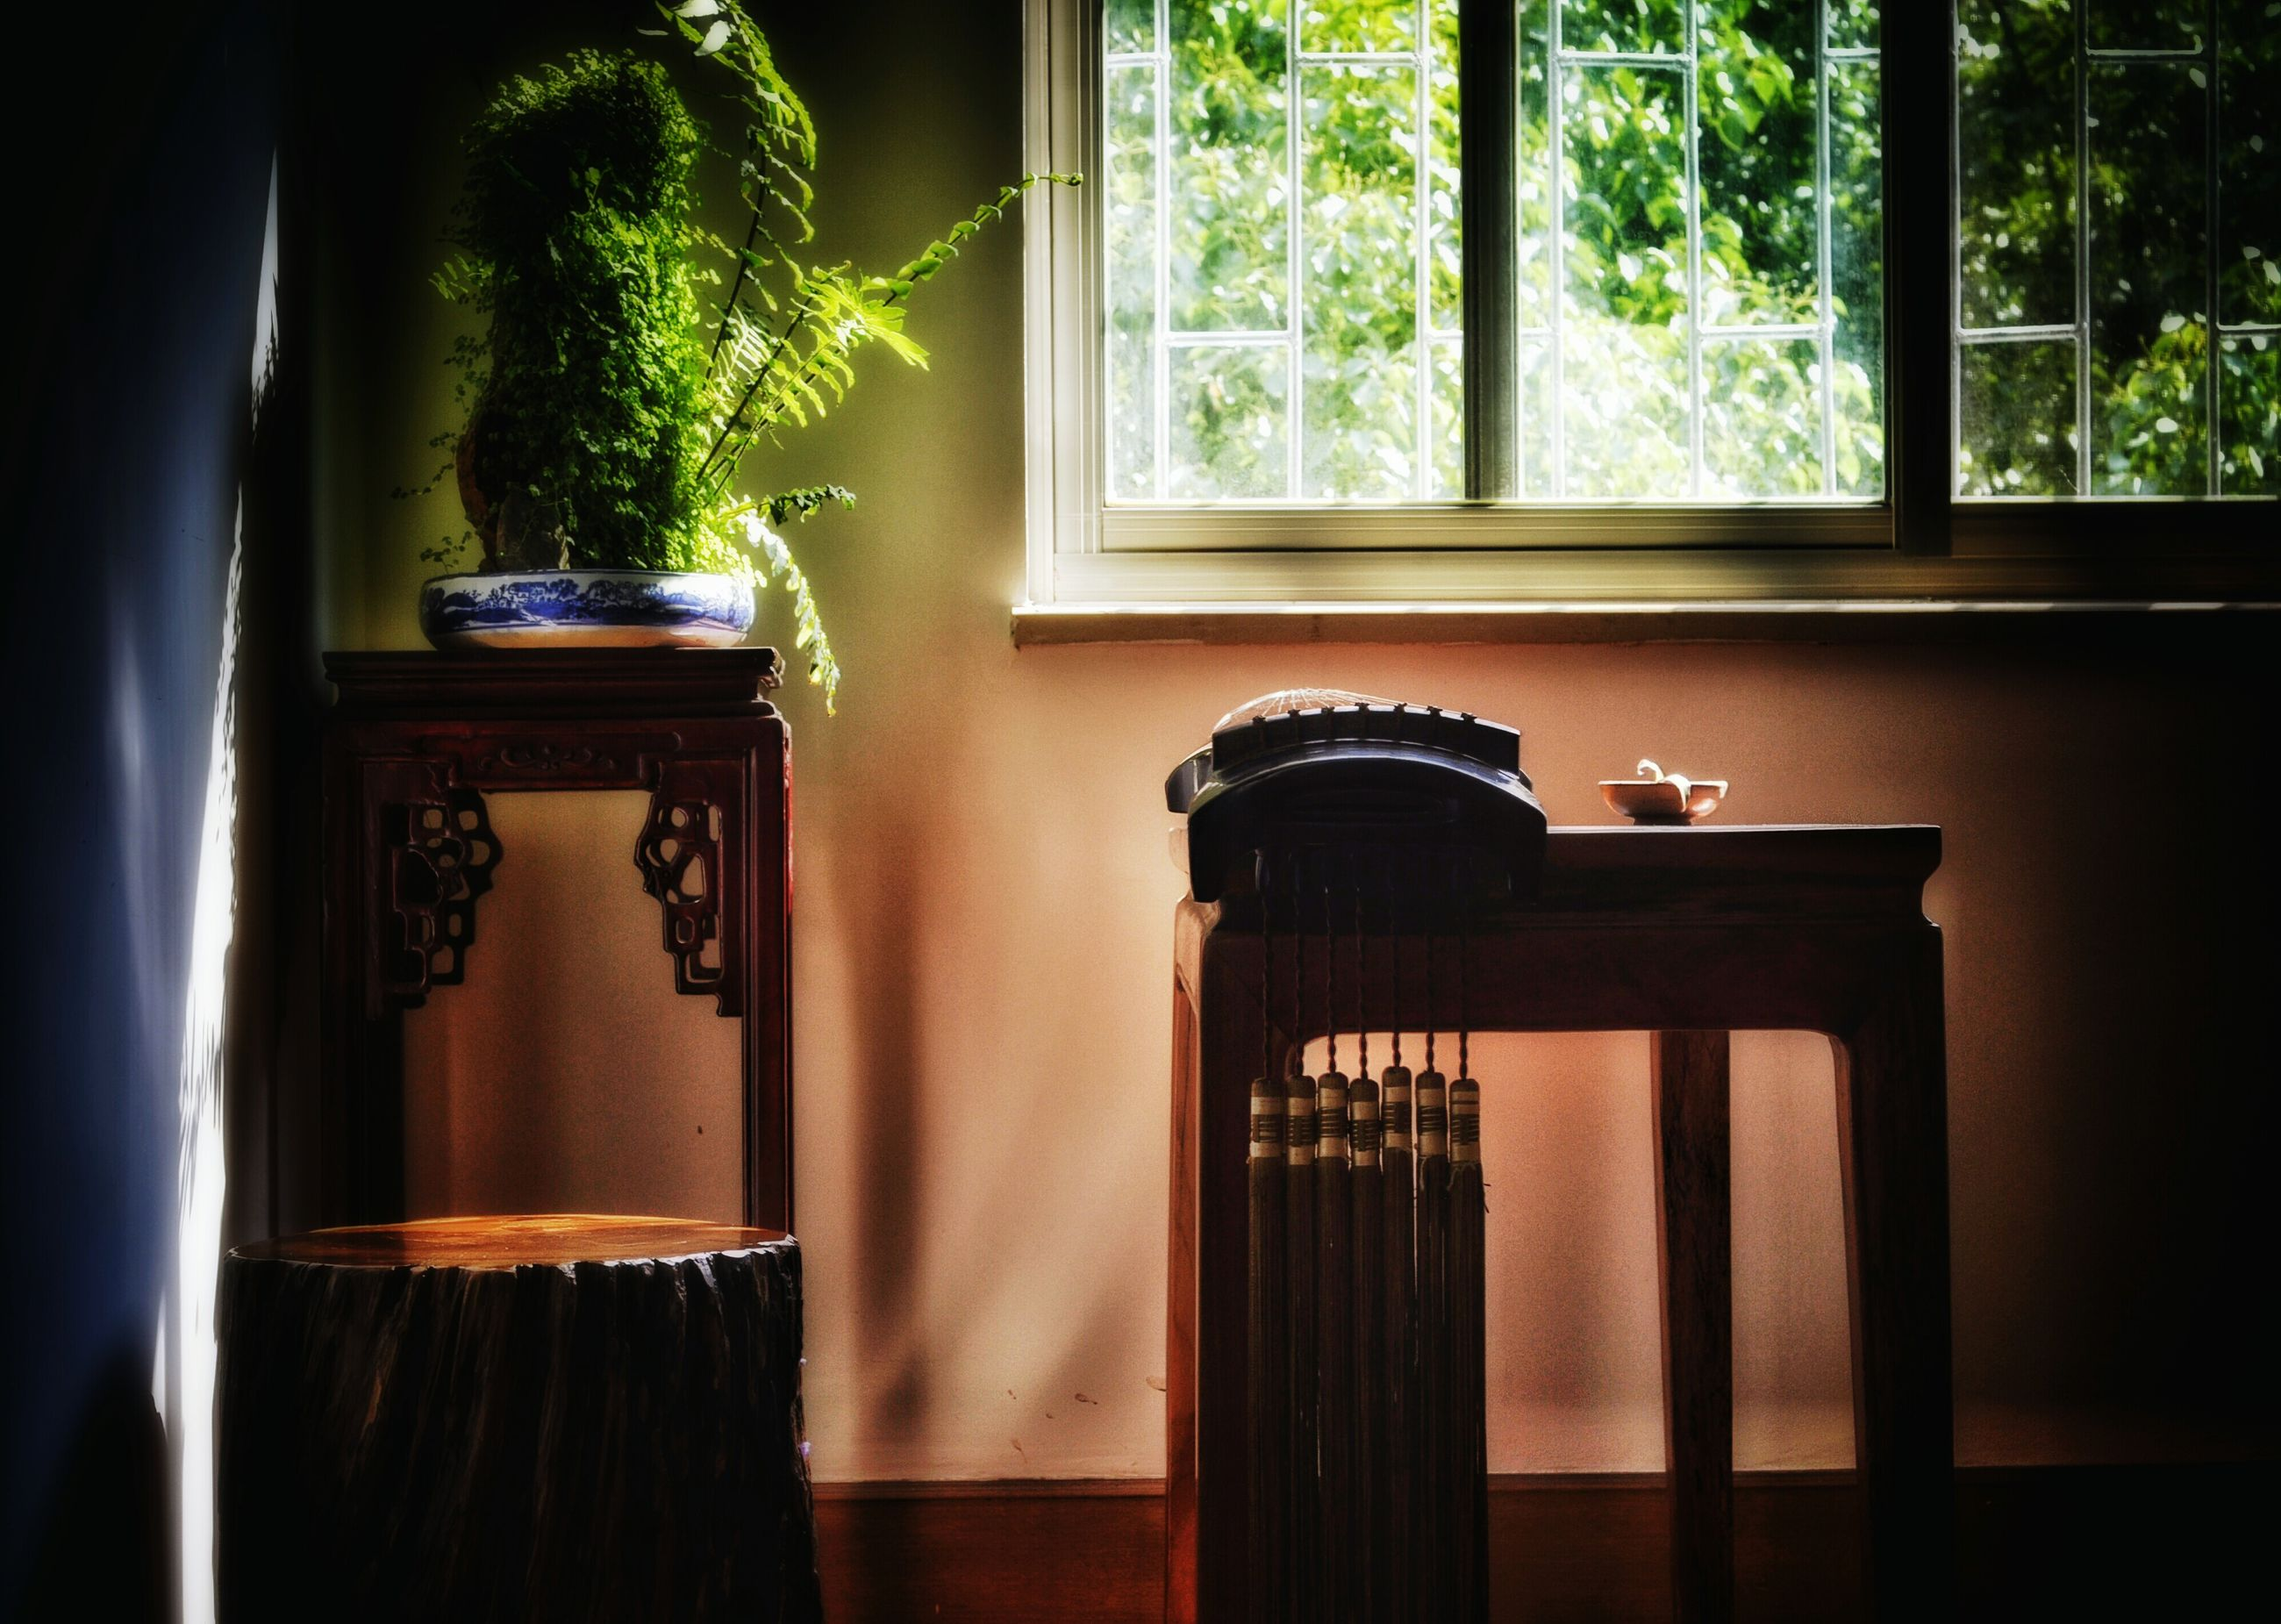 window, indoors, tree, house, door, home interior, built structure, glass - material, closed, potted plant, growth, architecture, window sill, open, plant, wood - material, curtain, entrance, day, transparent